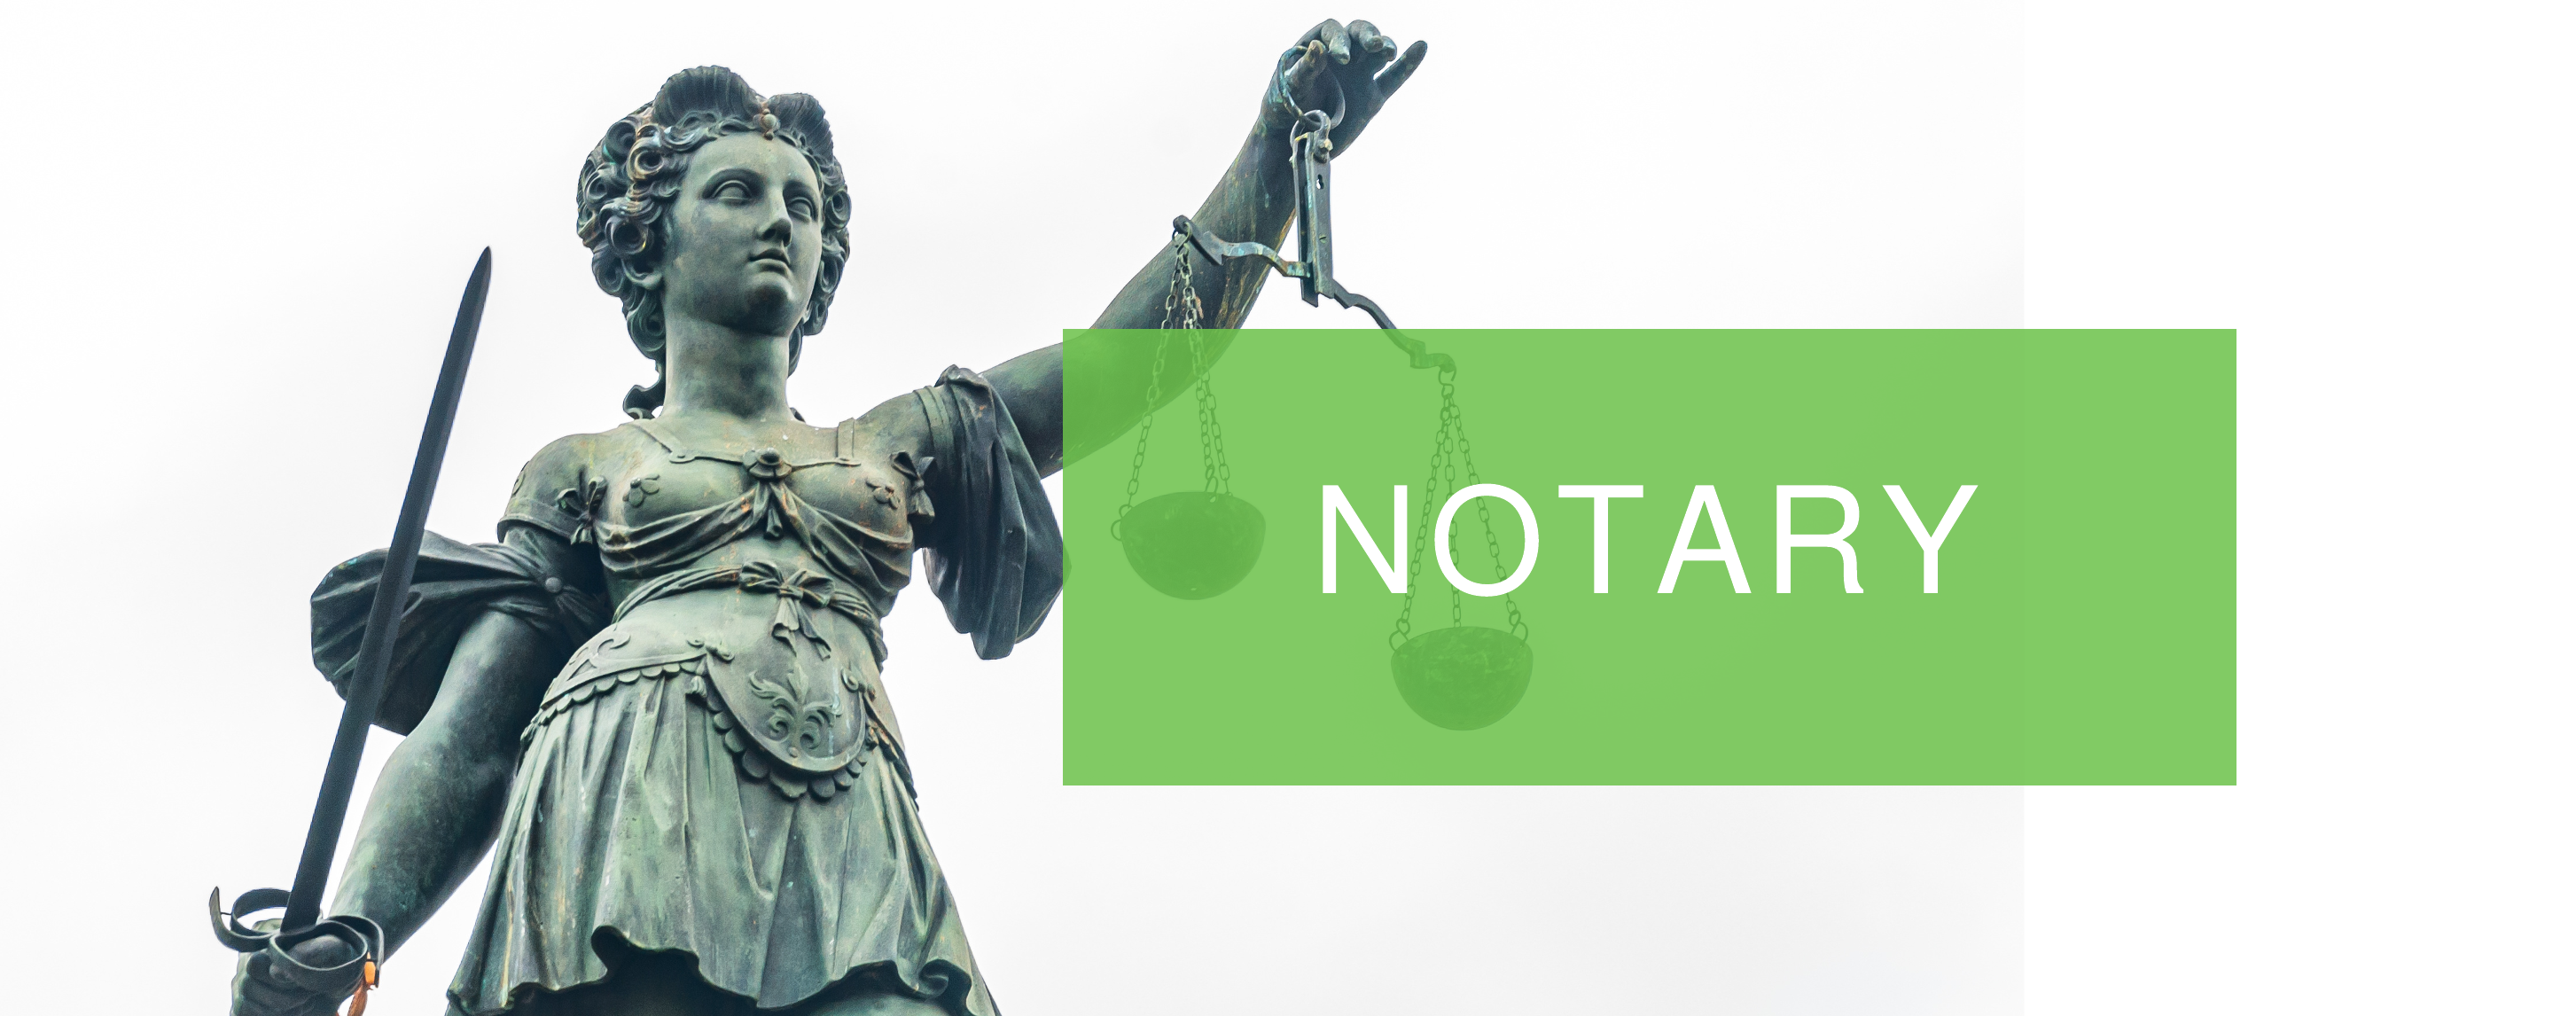 Notary service written with legal statue